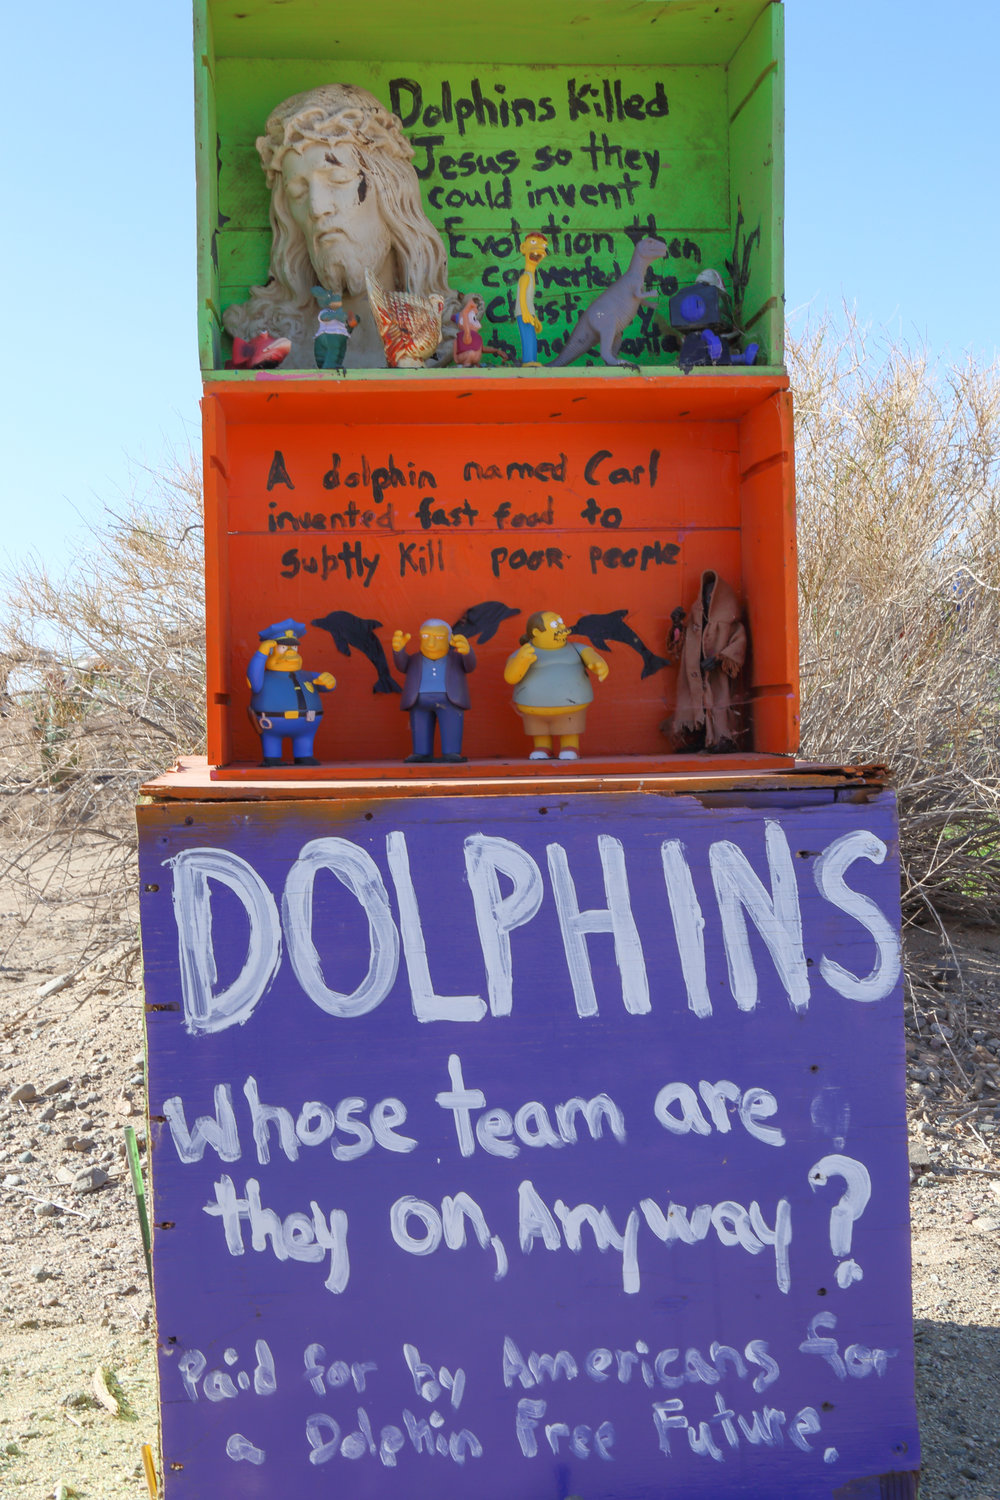 The dolphin conspiracy. Who knew?